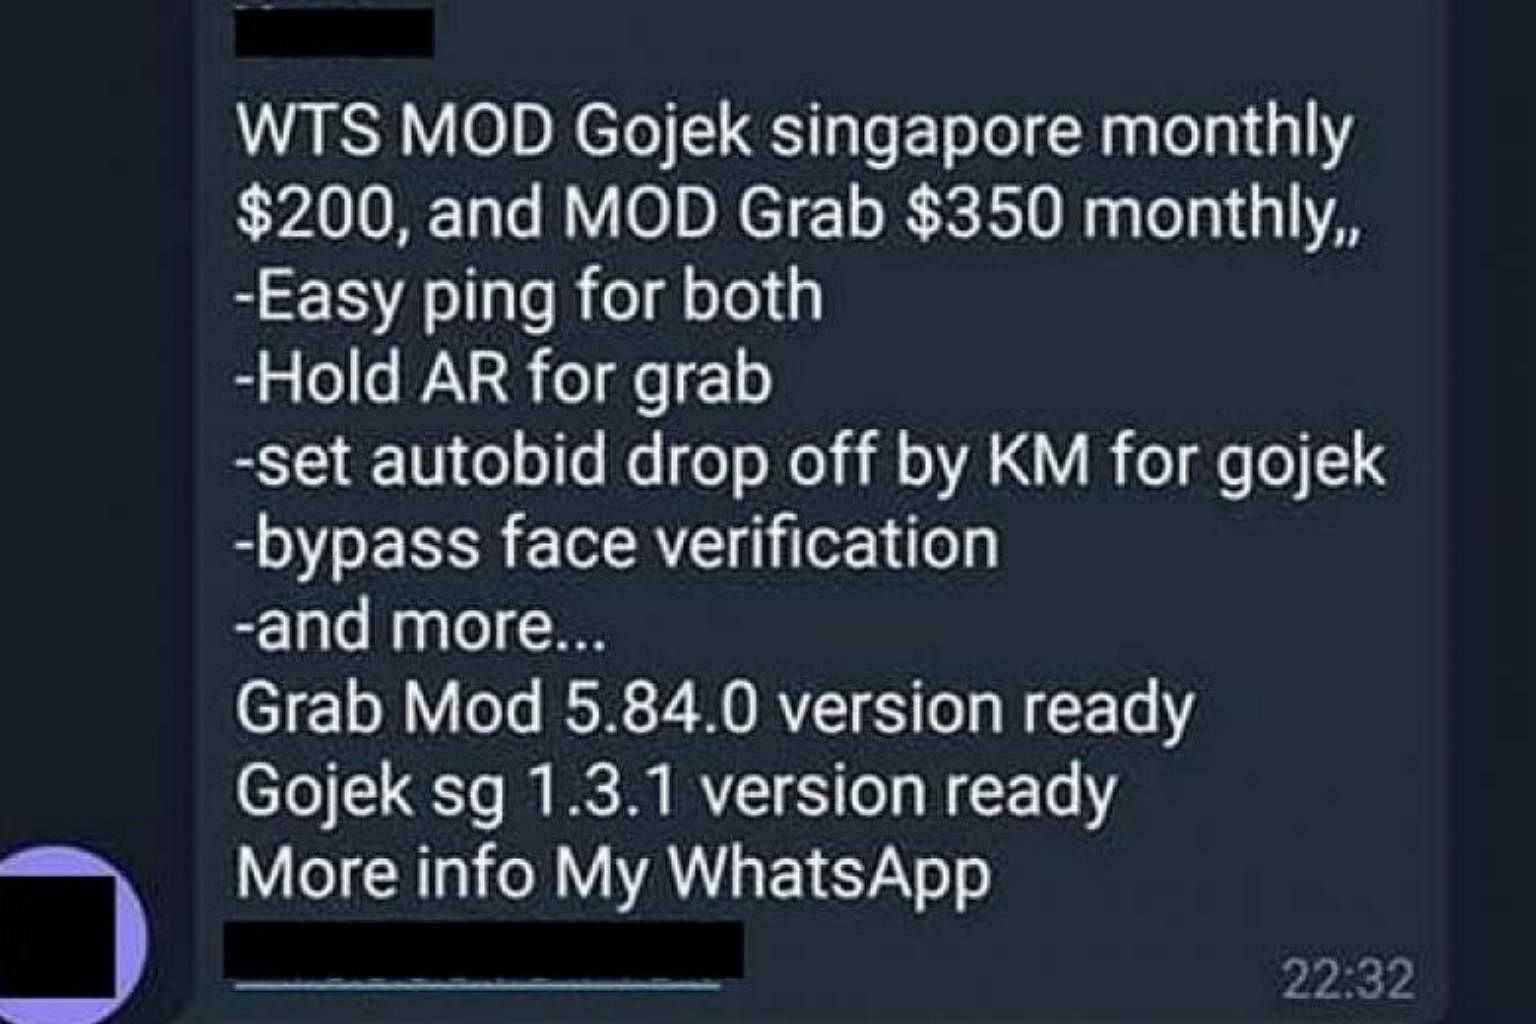 Private-hire drivers caught hacking Grab, Gojek apps to